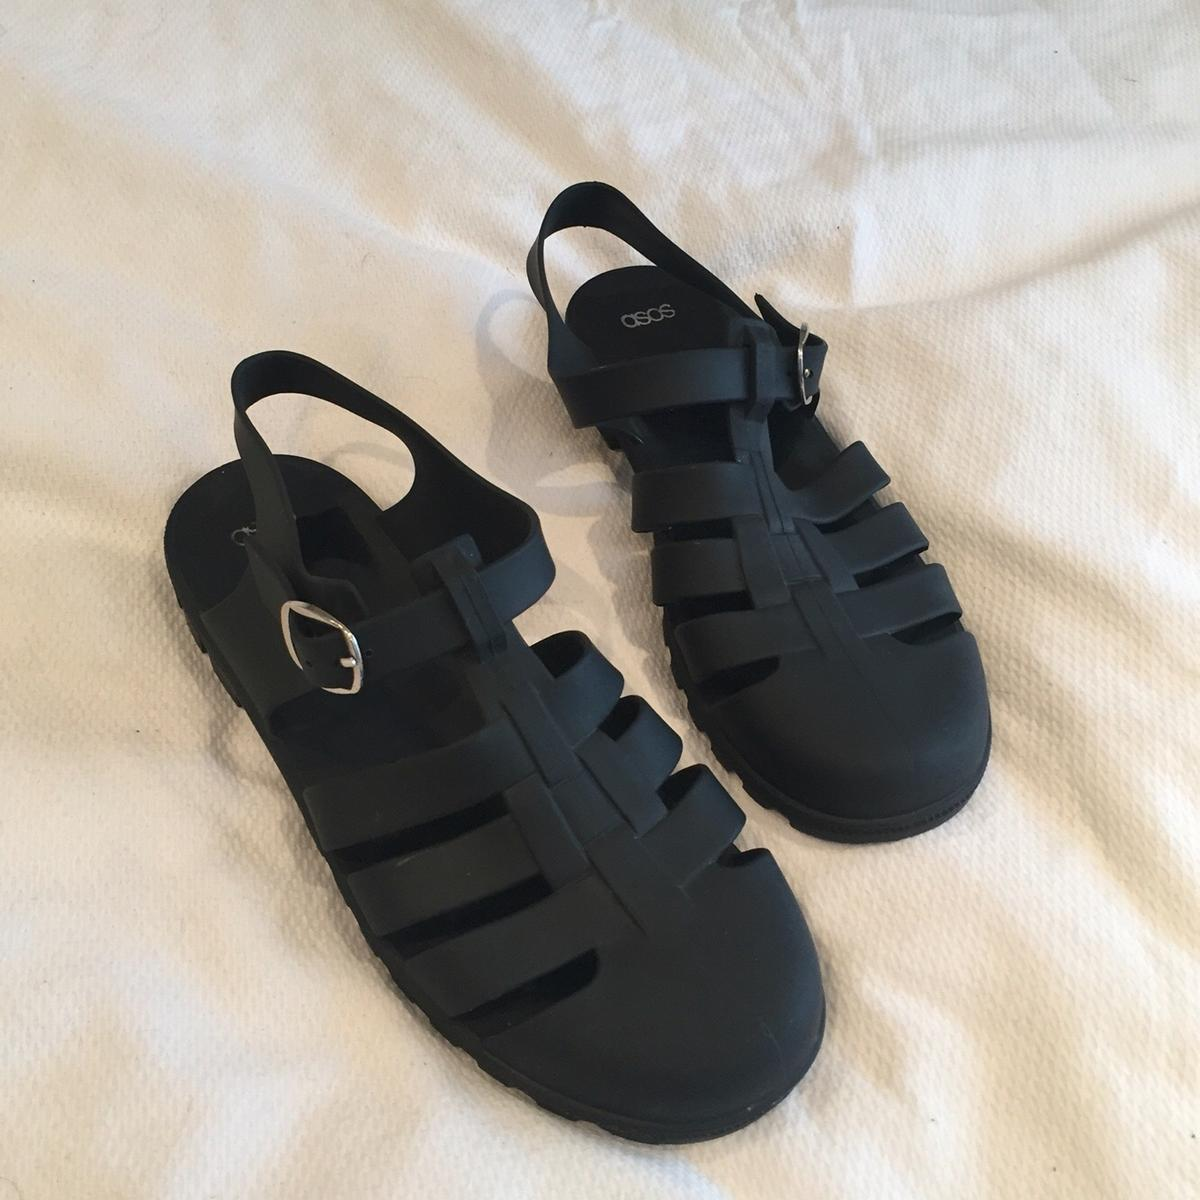 e714a086f6a ASOS matte black jelly sandals size 8 in TS17 Thornaby for £6.00 for ...